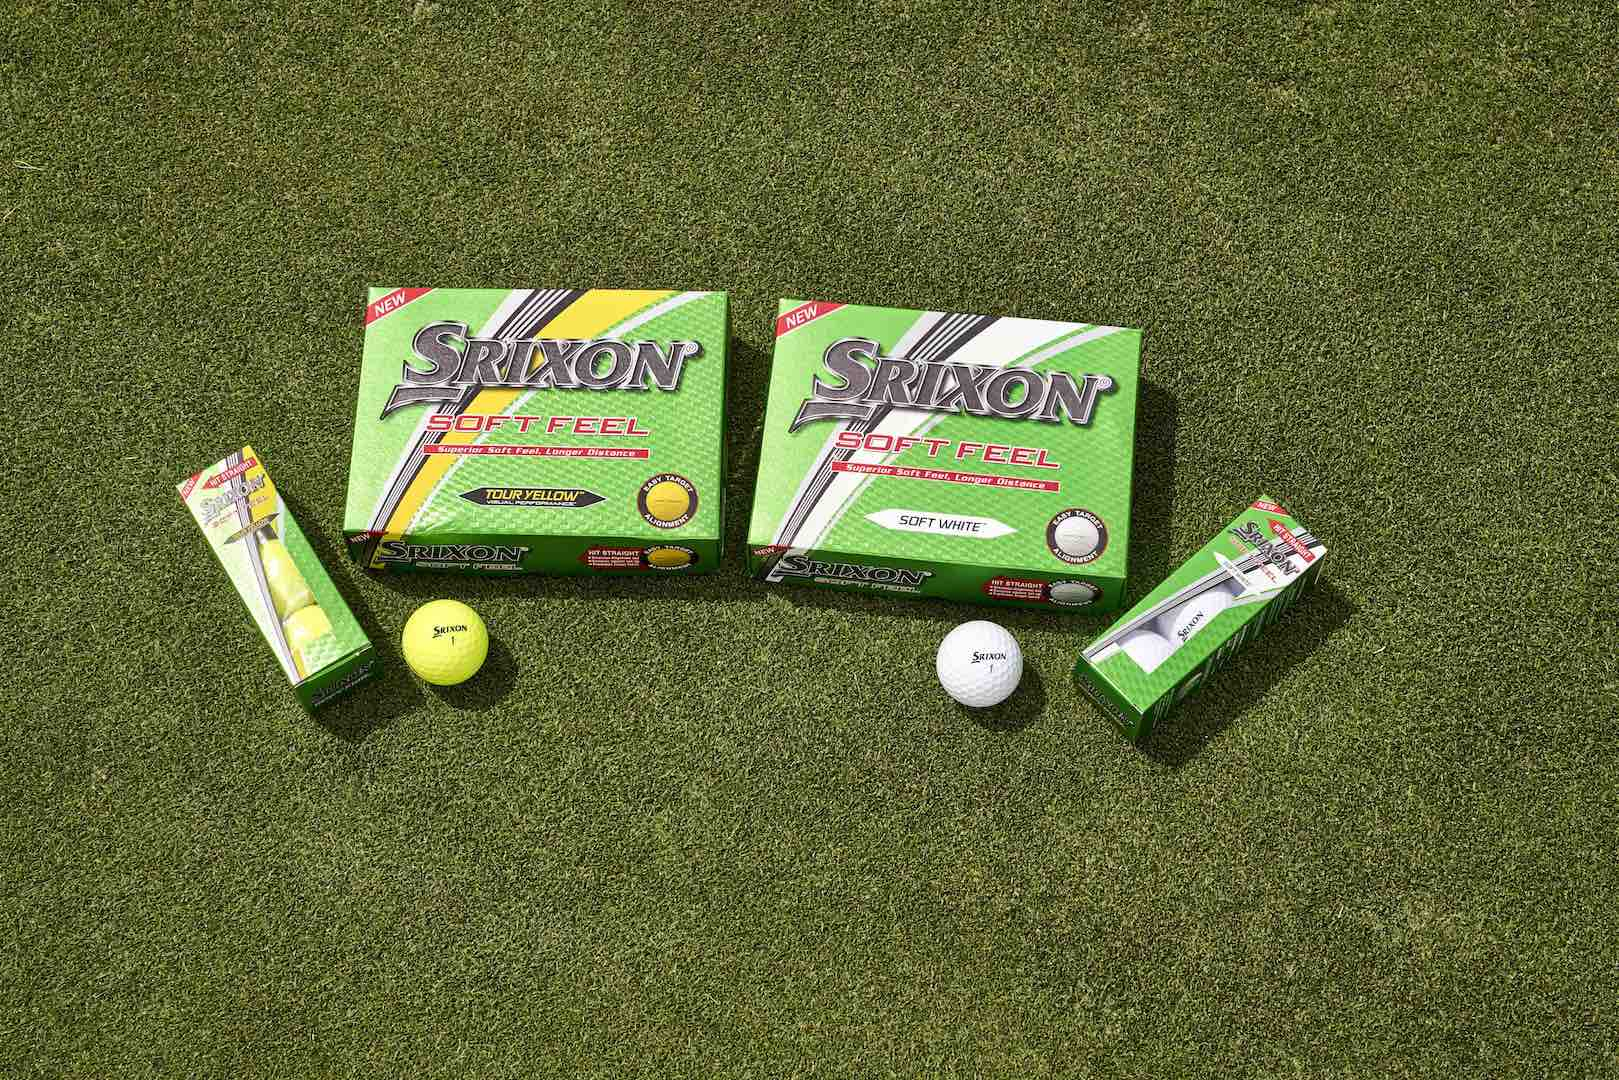 Srixon introduces the new soft feel golf ball